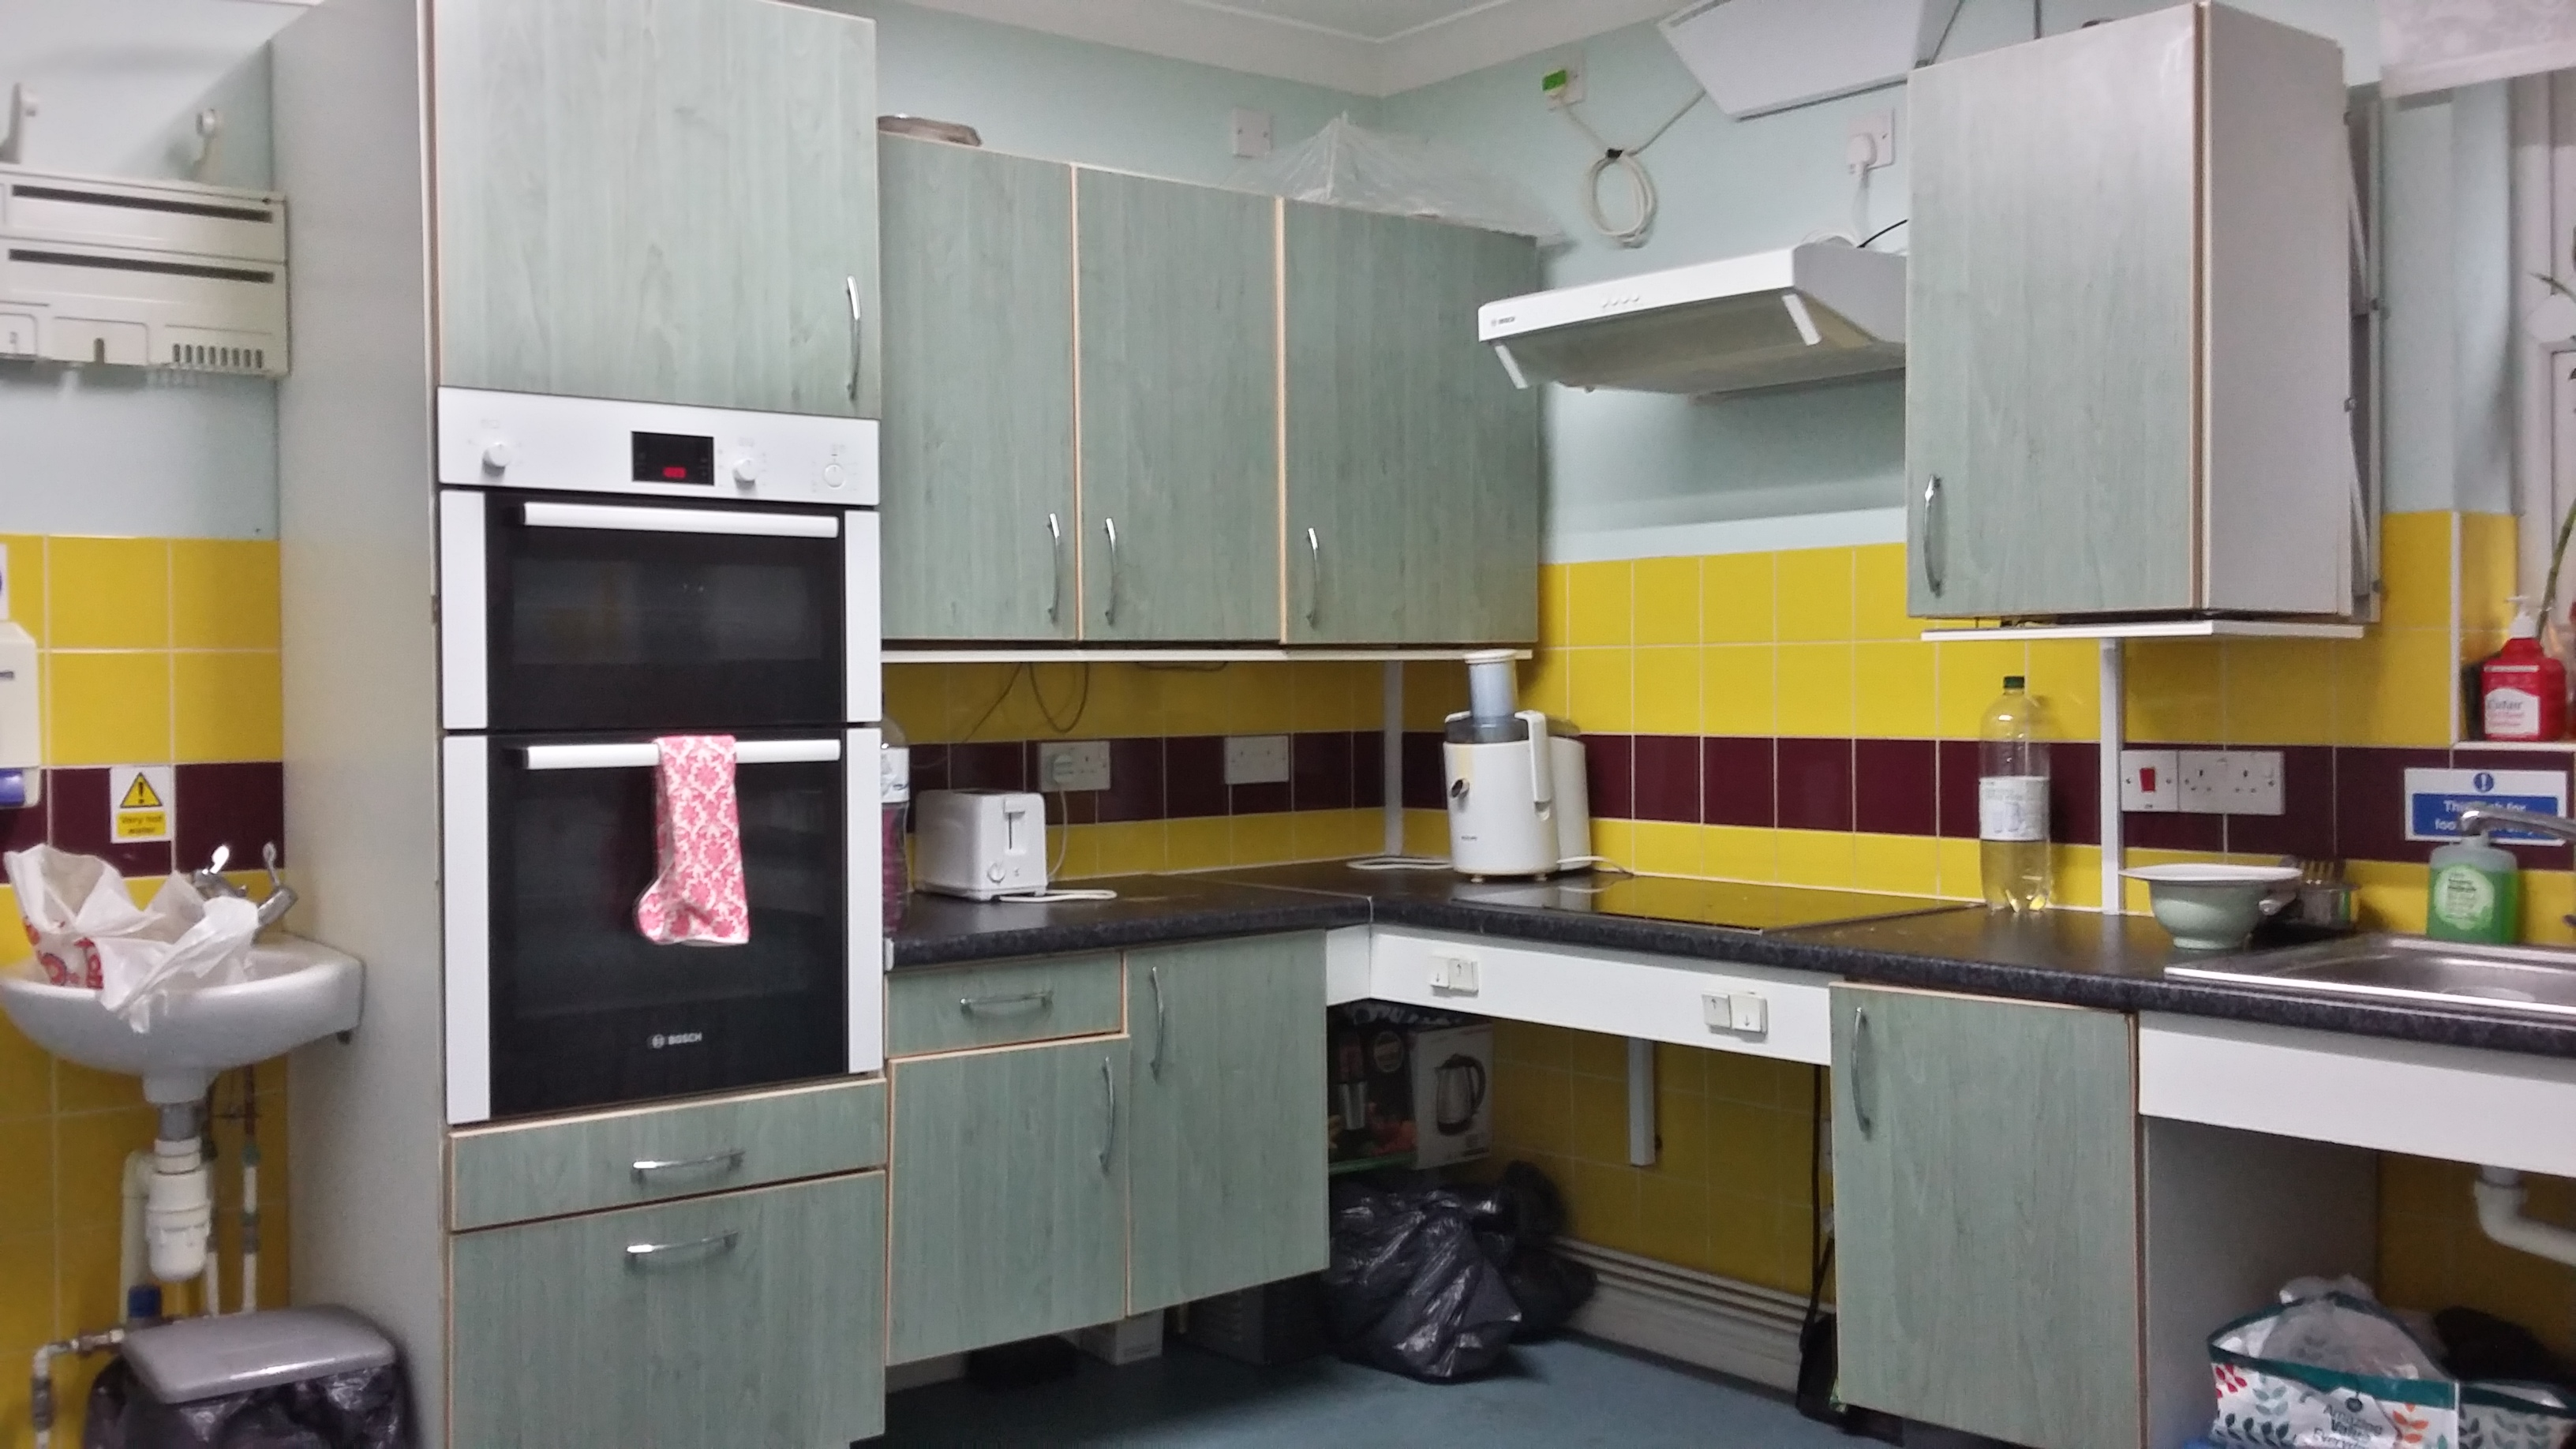 Student Rooms For Rent In Clerkenwell London